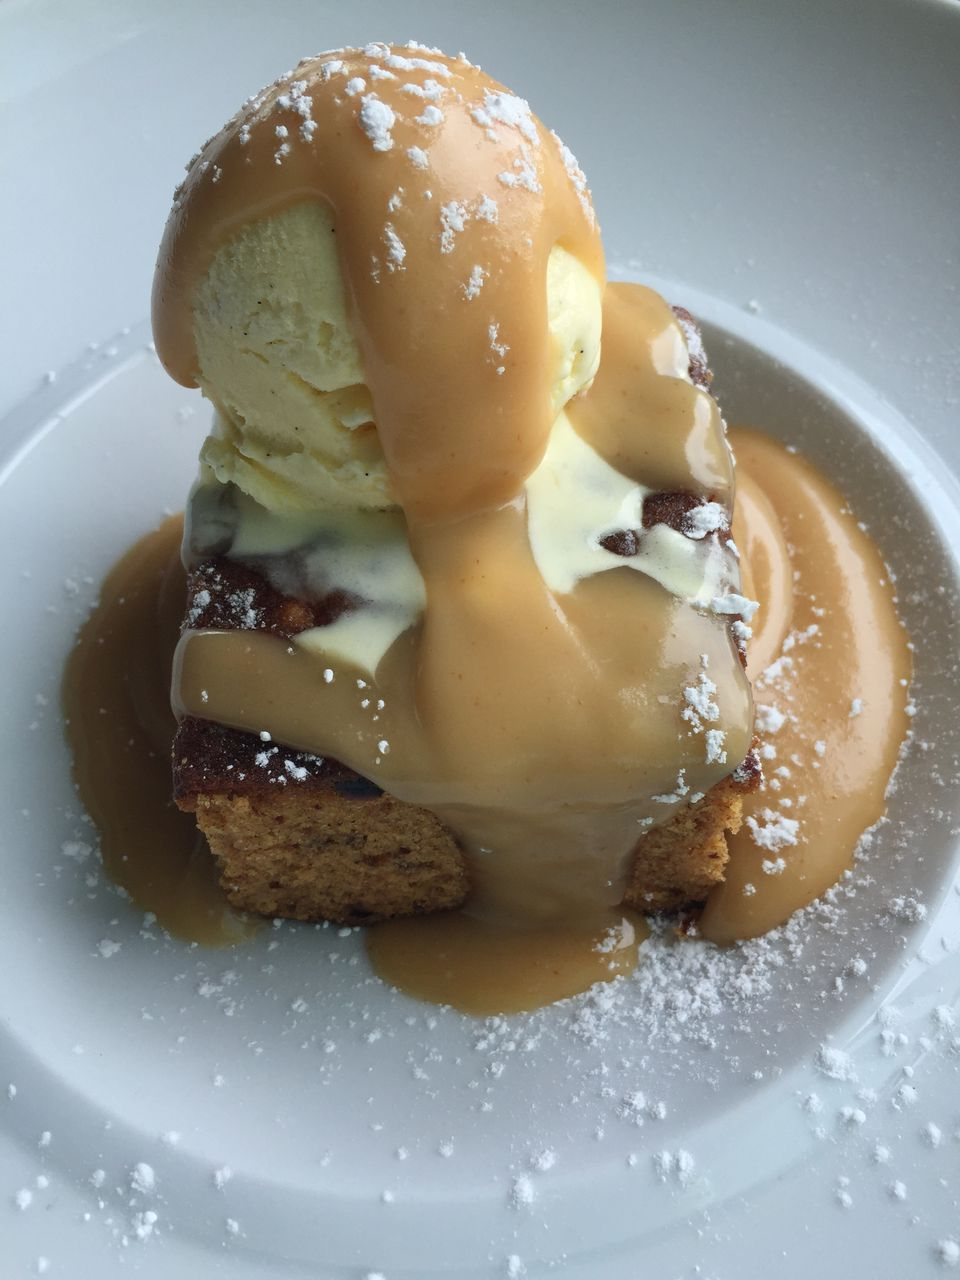 dessert sauce over cake and ice cream